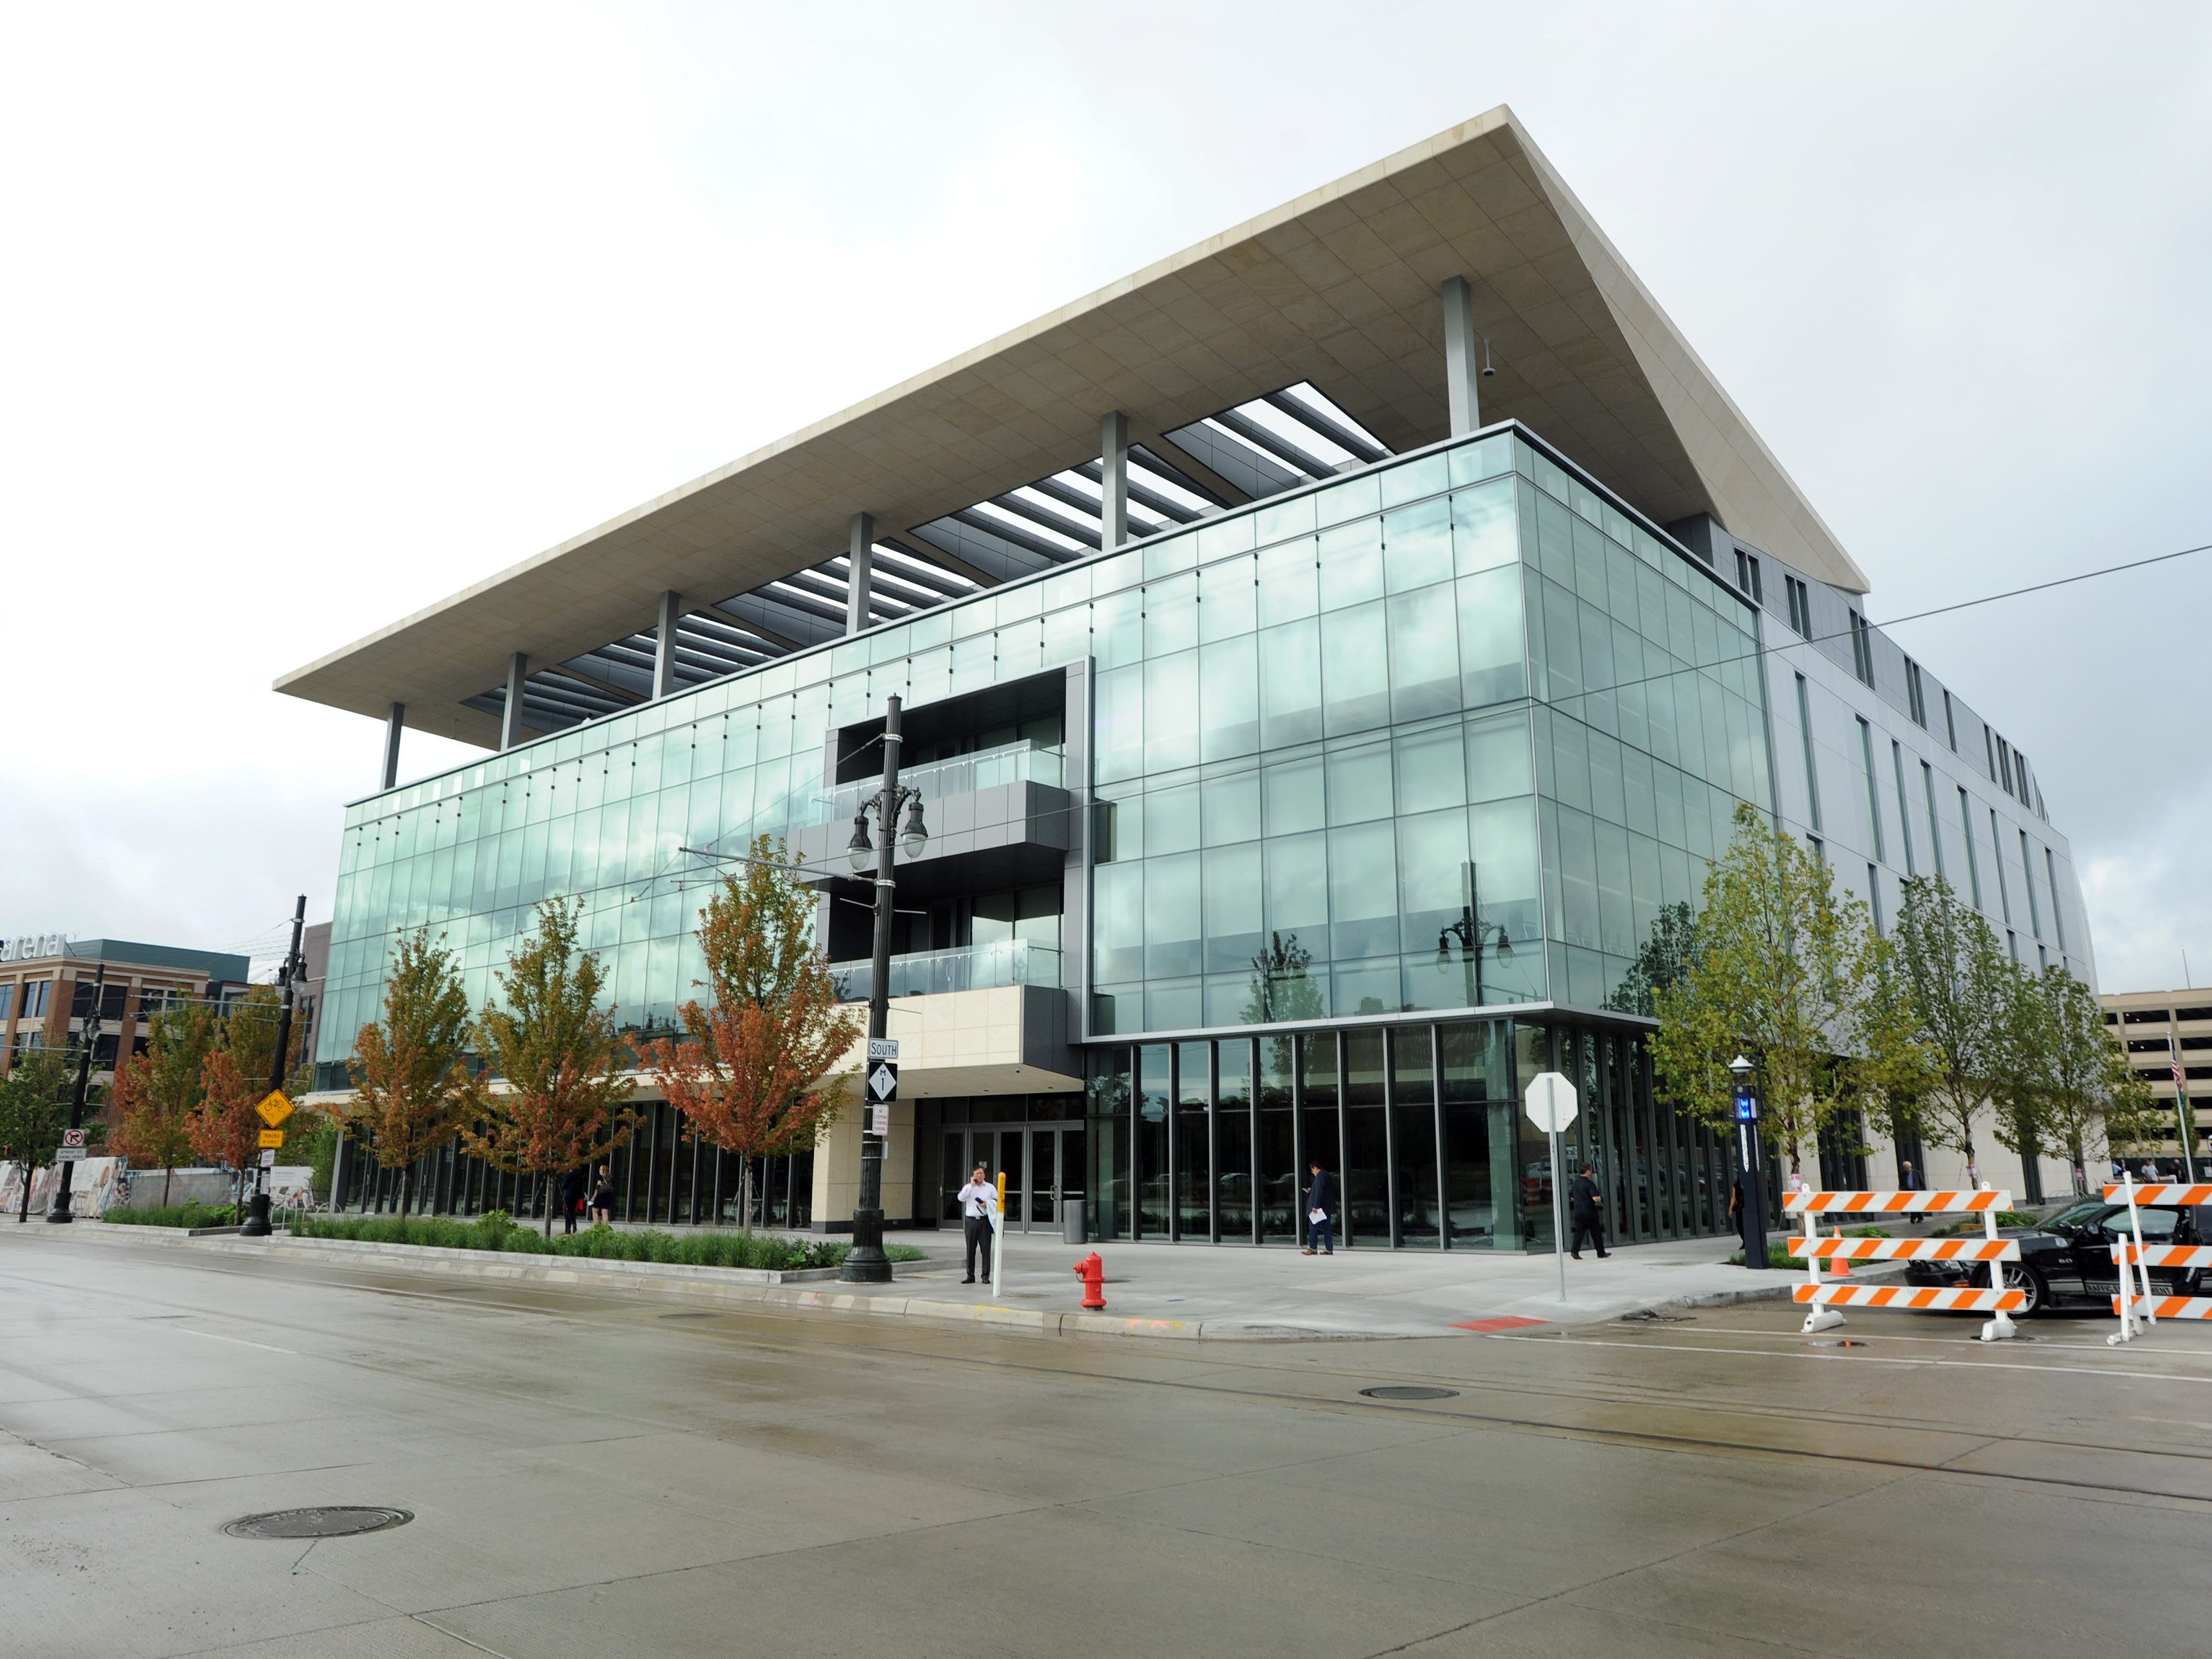 The new Mike Ilitch School of Business at Wayne State University celebrated its ribbon-cutting Tuesday, Aug. 21, 2018 in Detroit.  The building at 2771 Woodward stands just north of Little Caesars Arena.